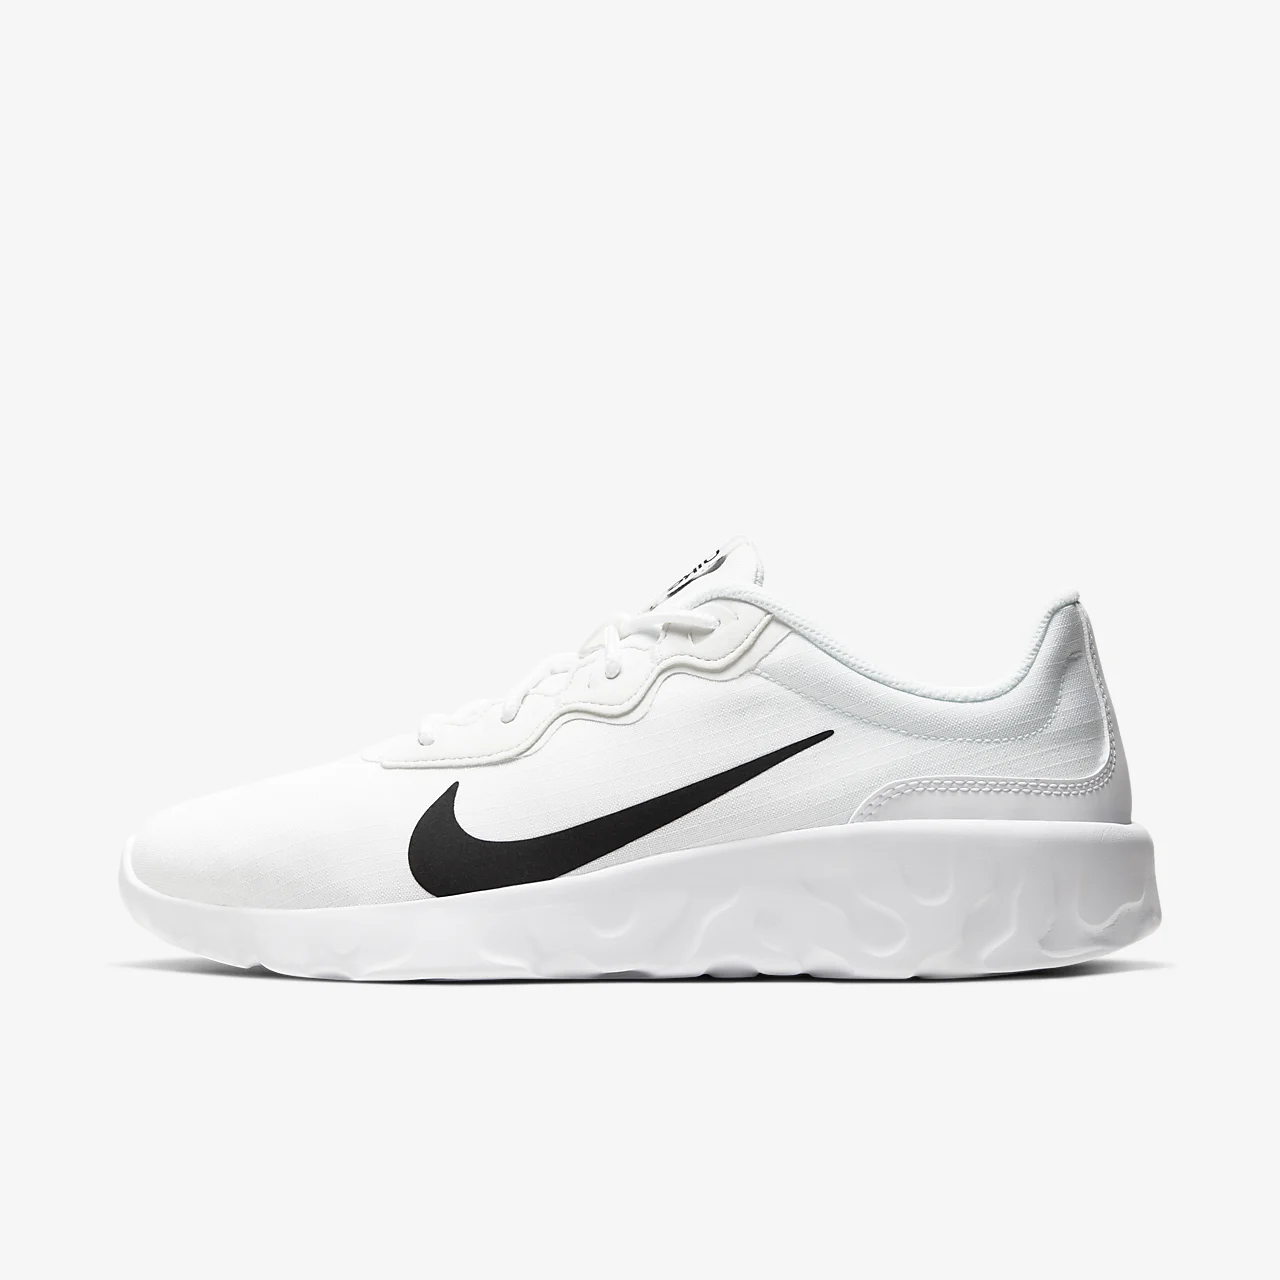 유럽직배송 나이키 NIKE Nike Explore Strada Men's Shoe CD7093-101